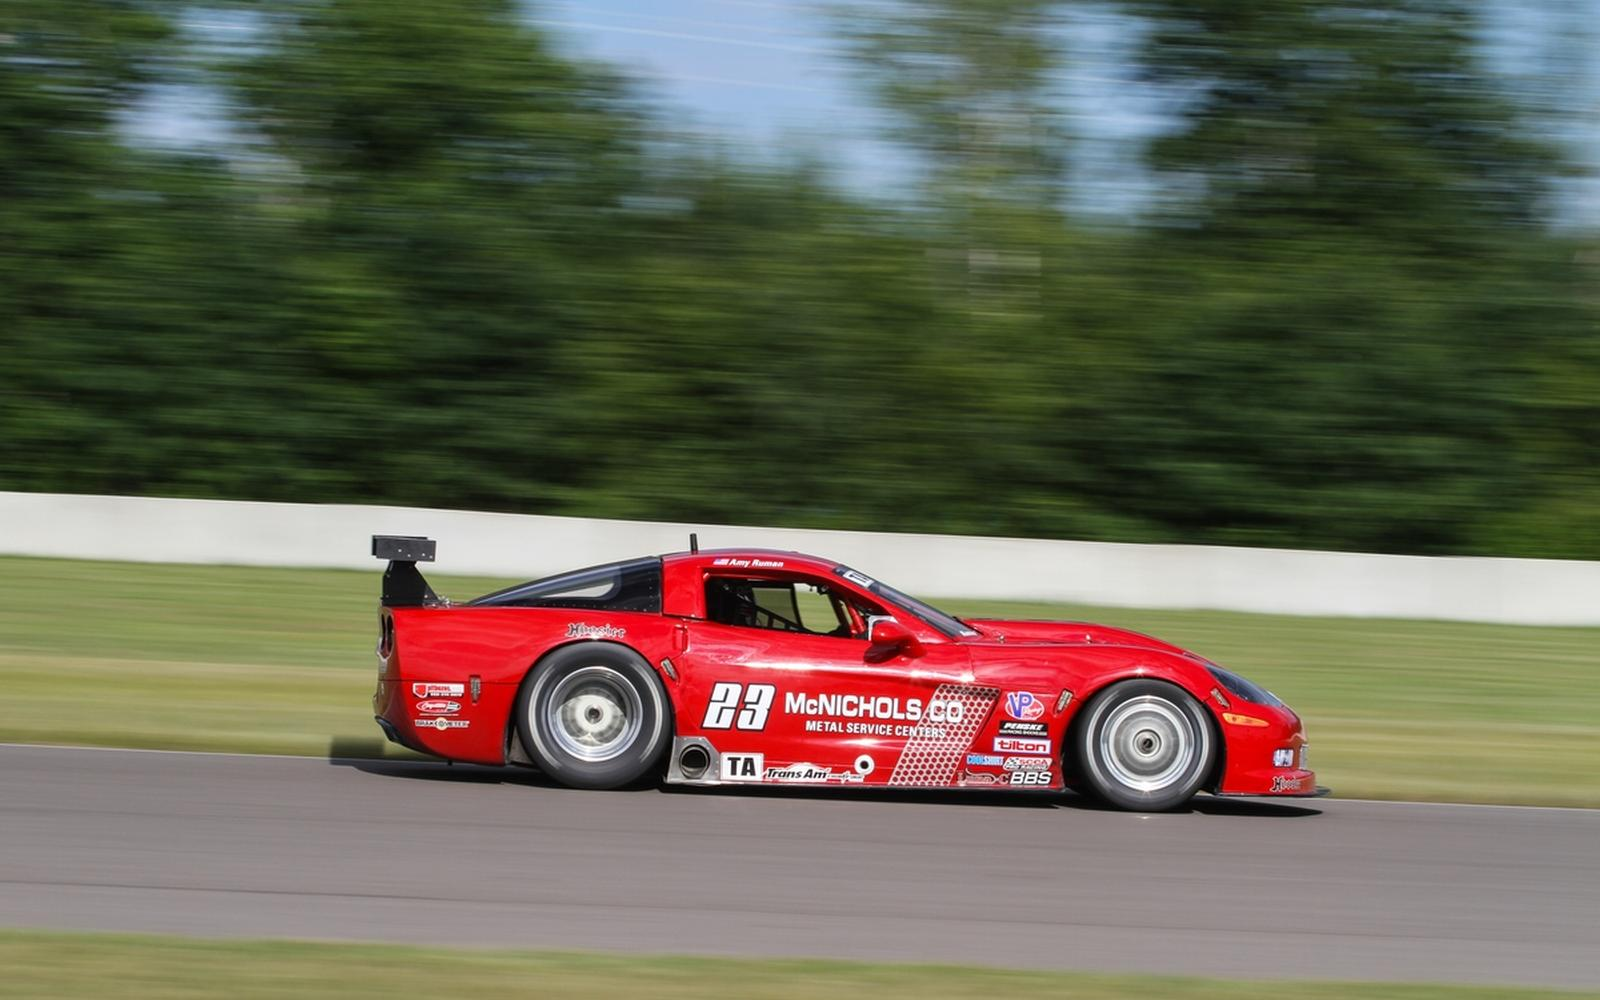 Ruman Retains TA Class Championship Points Lead After Frustrating 9th Place Finish at Brainerd, MN